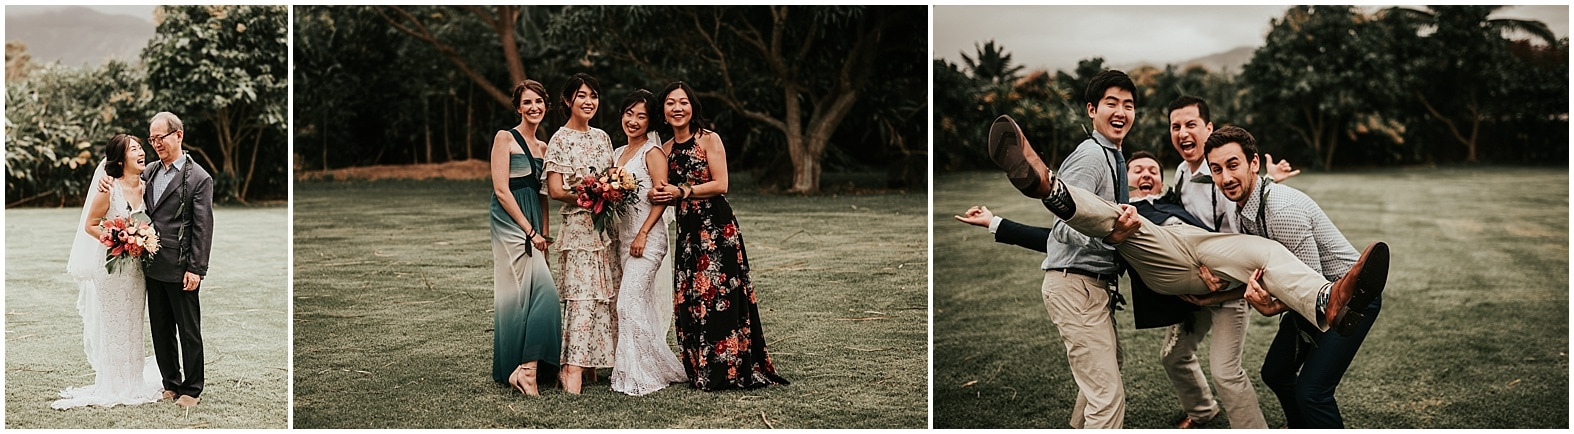 Oahu wedding photographer27